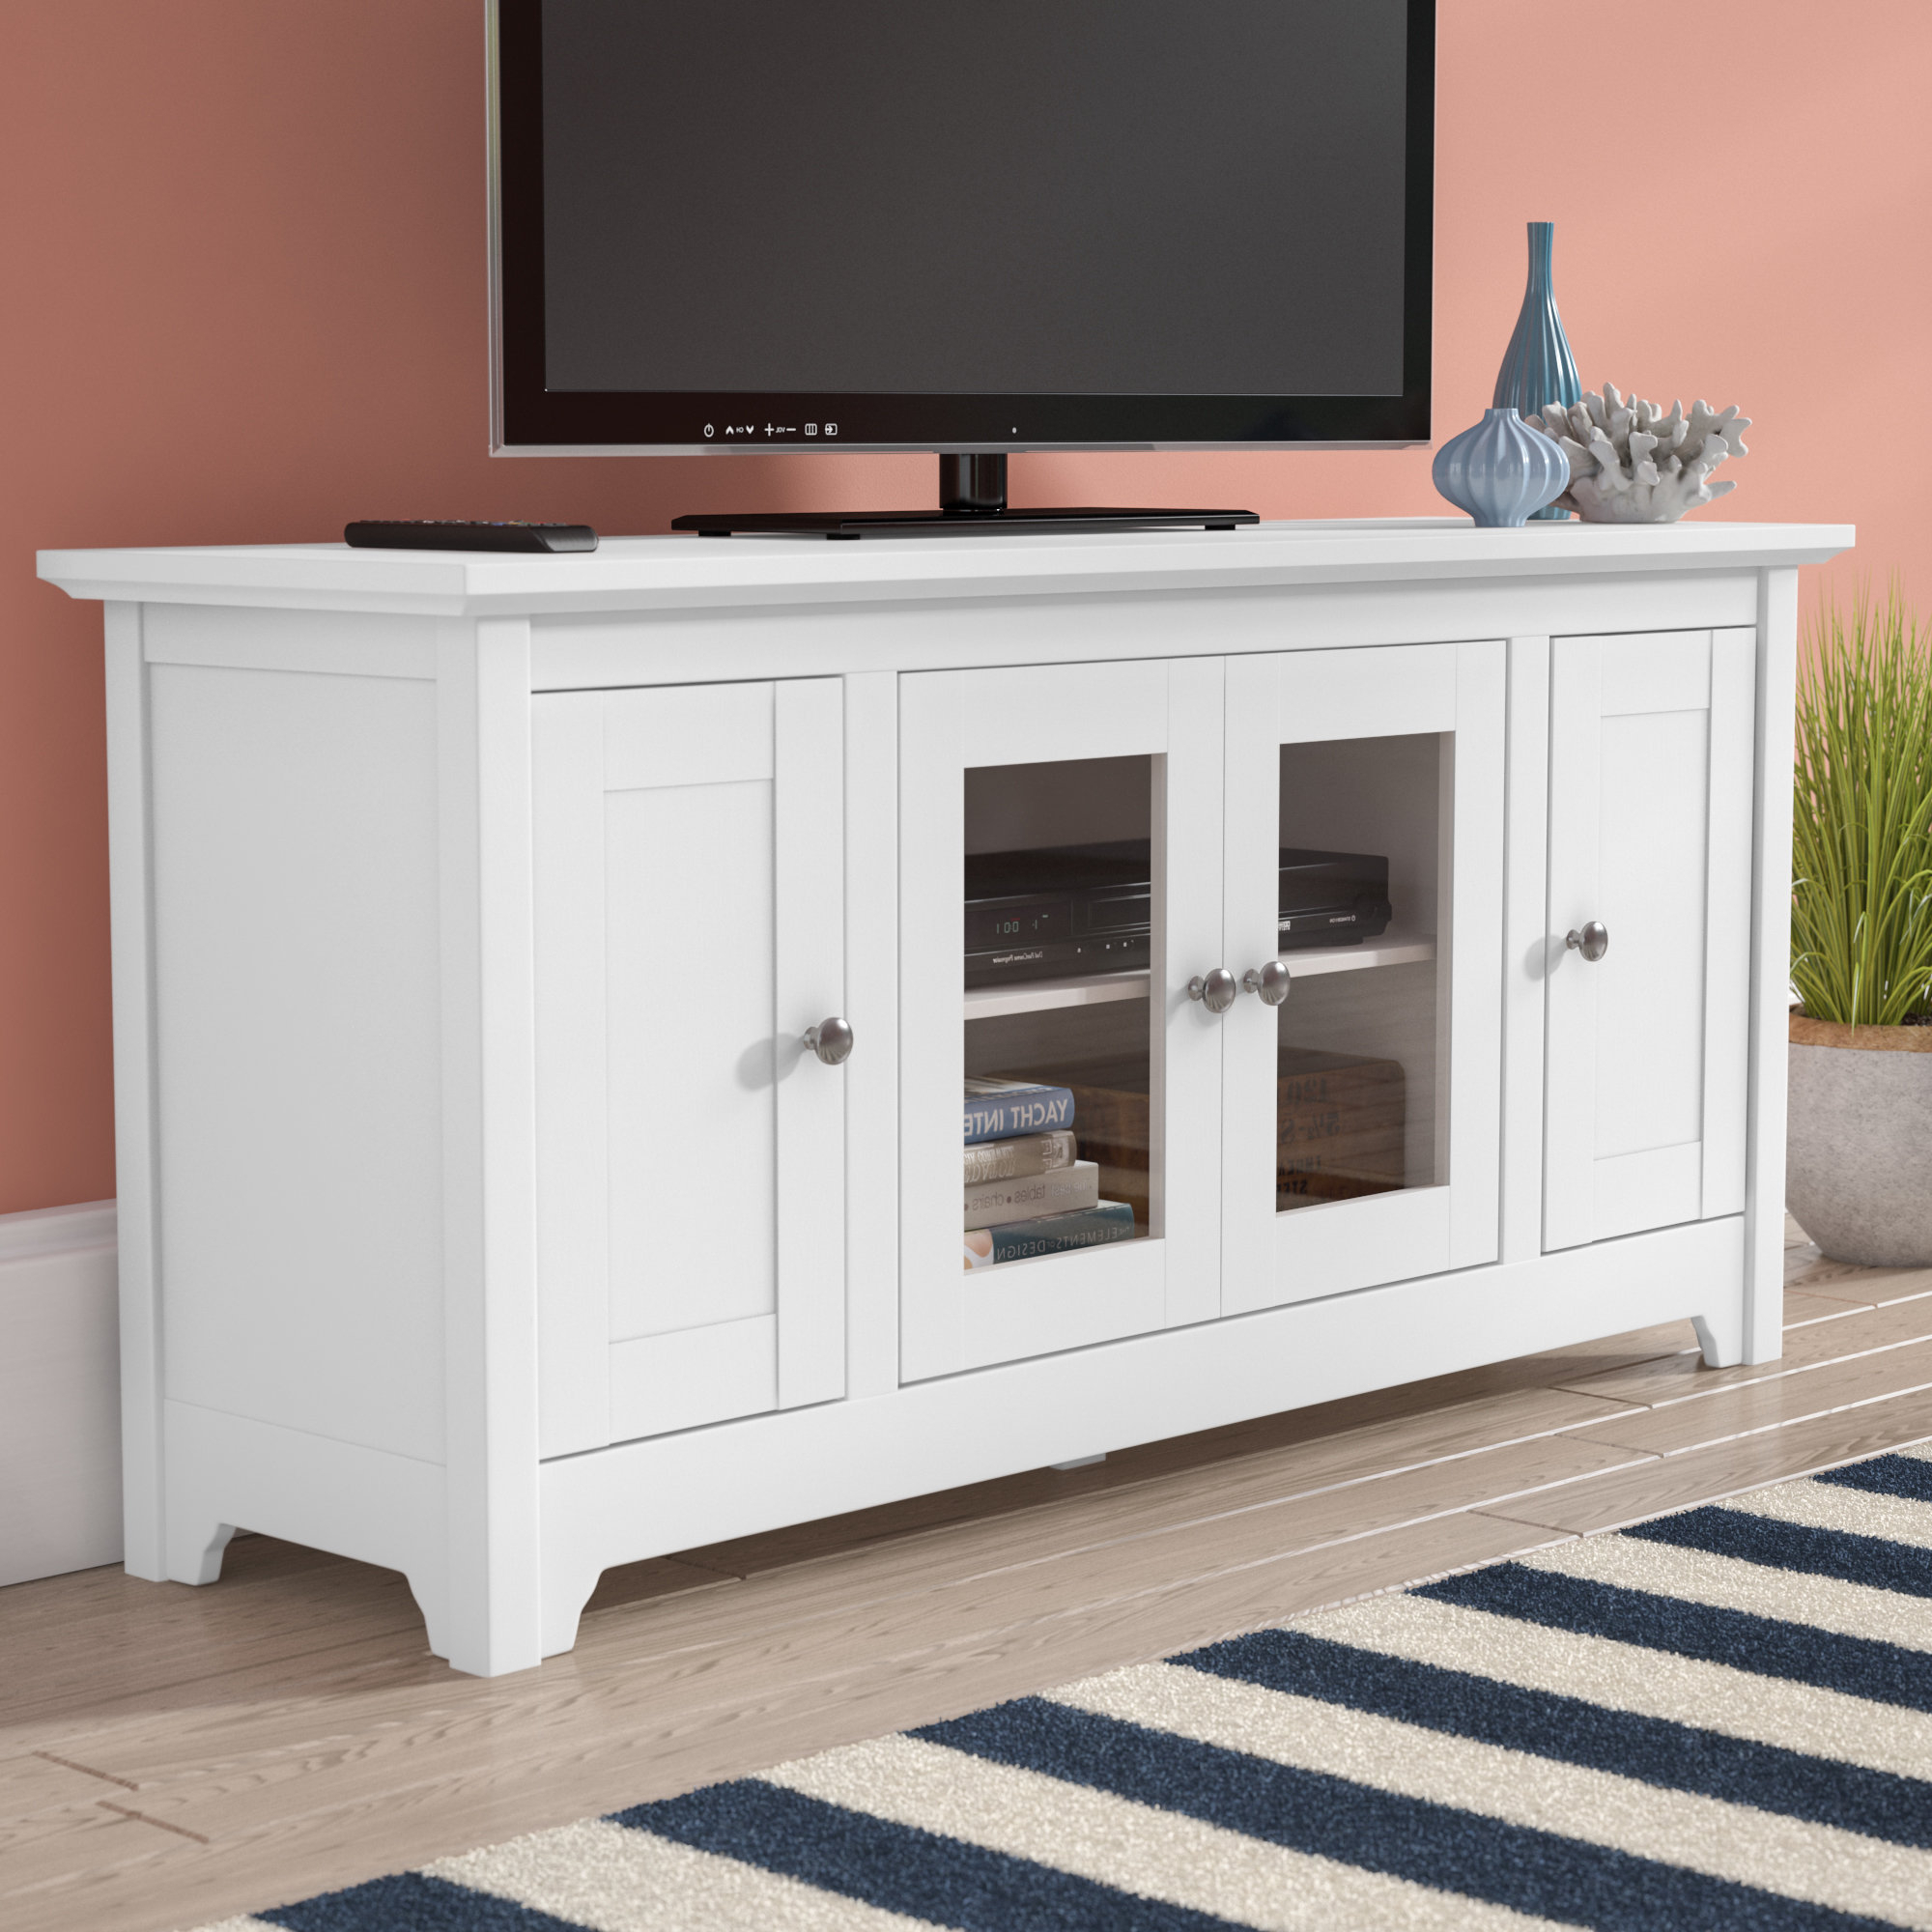 Ducar 74 Inch Tv Stands Regarding Favorite Tv Stands & Entertainment Centers You'll Love (View 3 of 20)